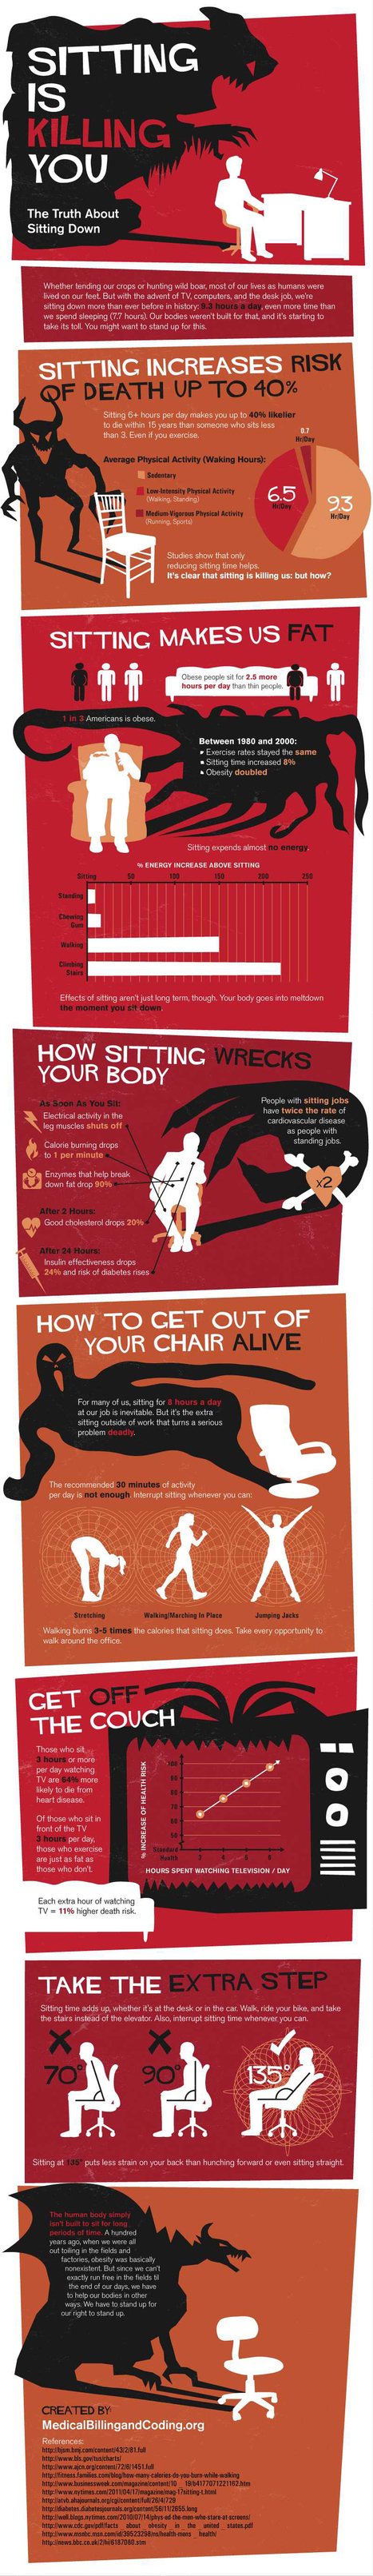 Sitting Is Killing You!  #Infographic Promoting Exercise | Organic Pathos | Scoop.it